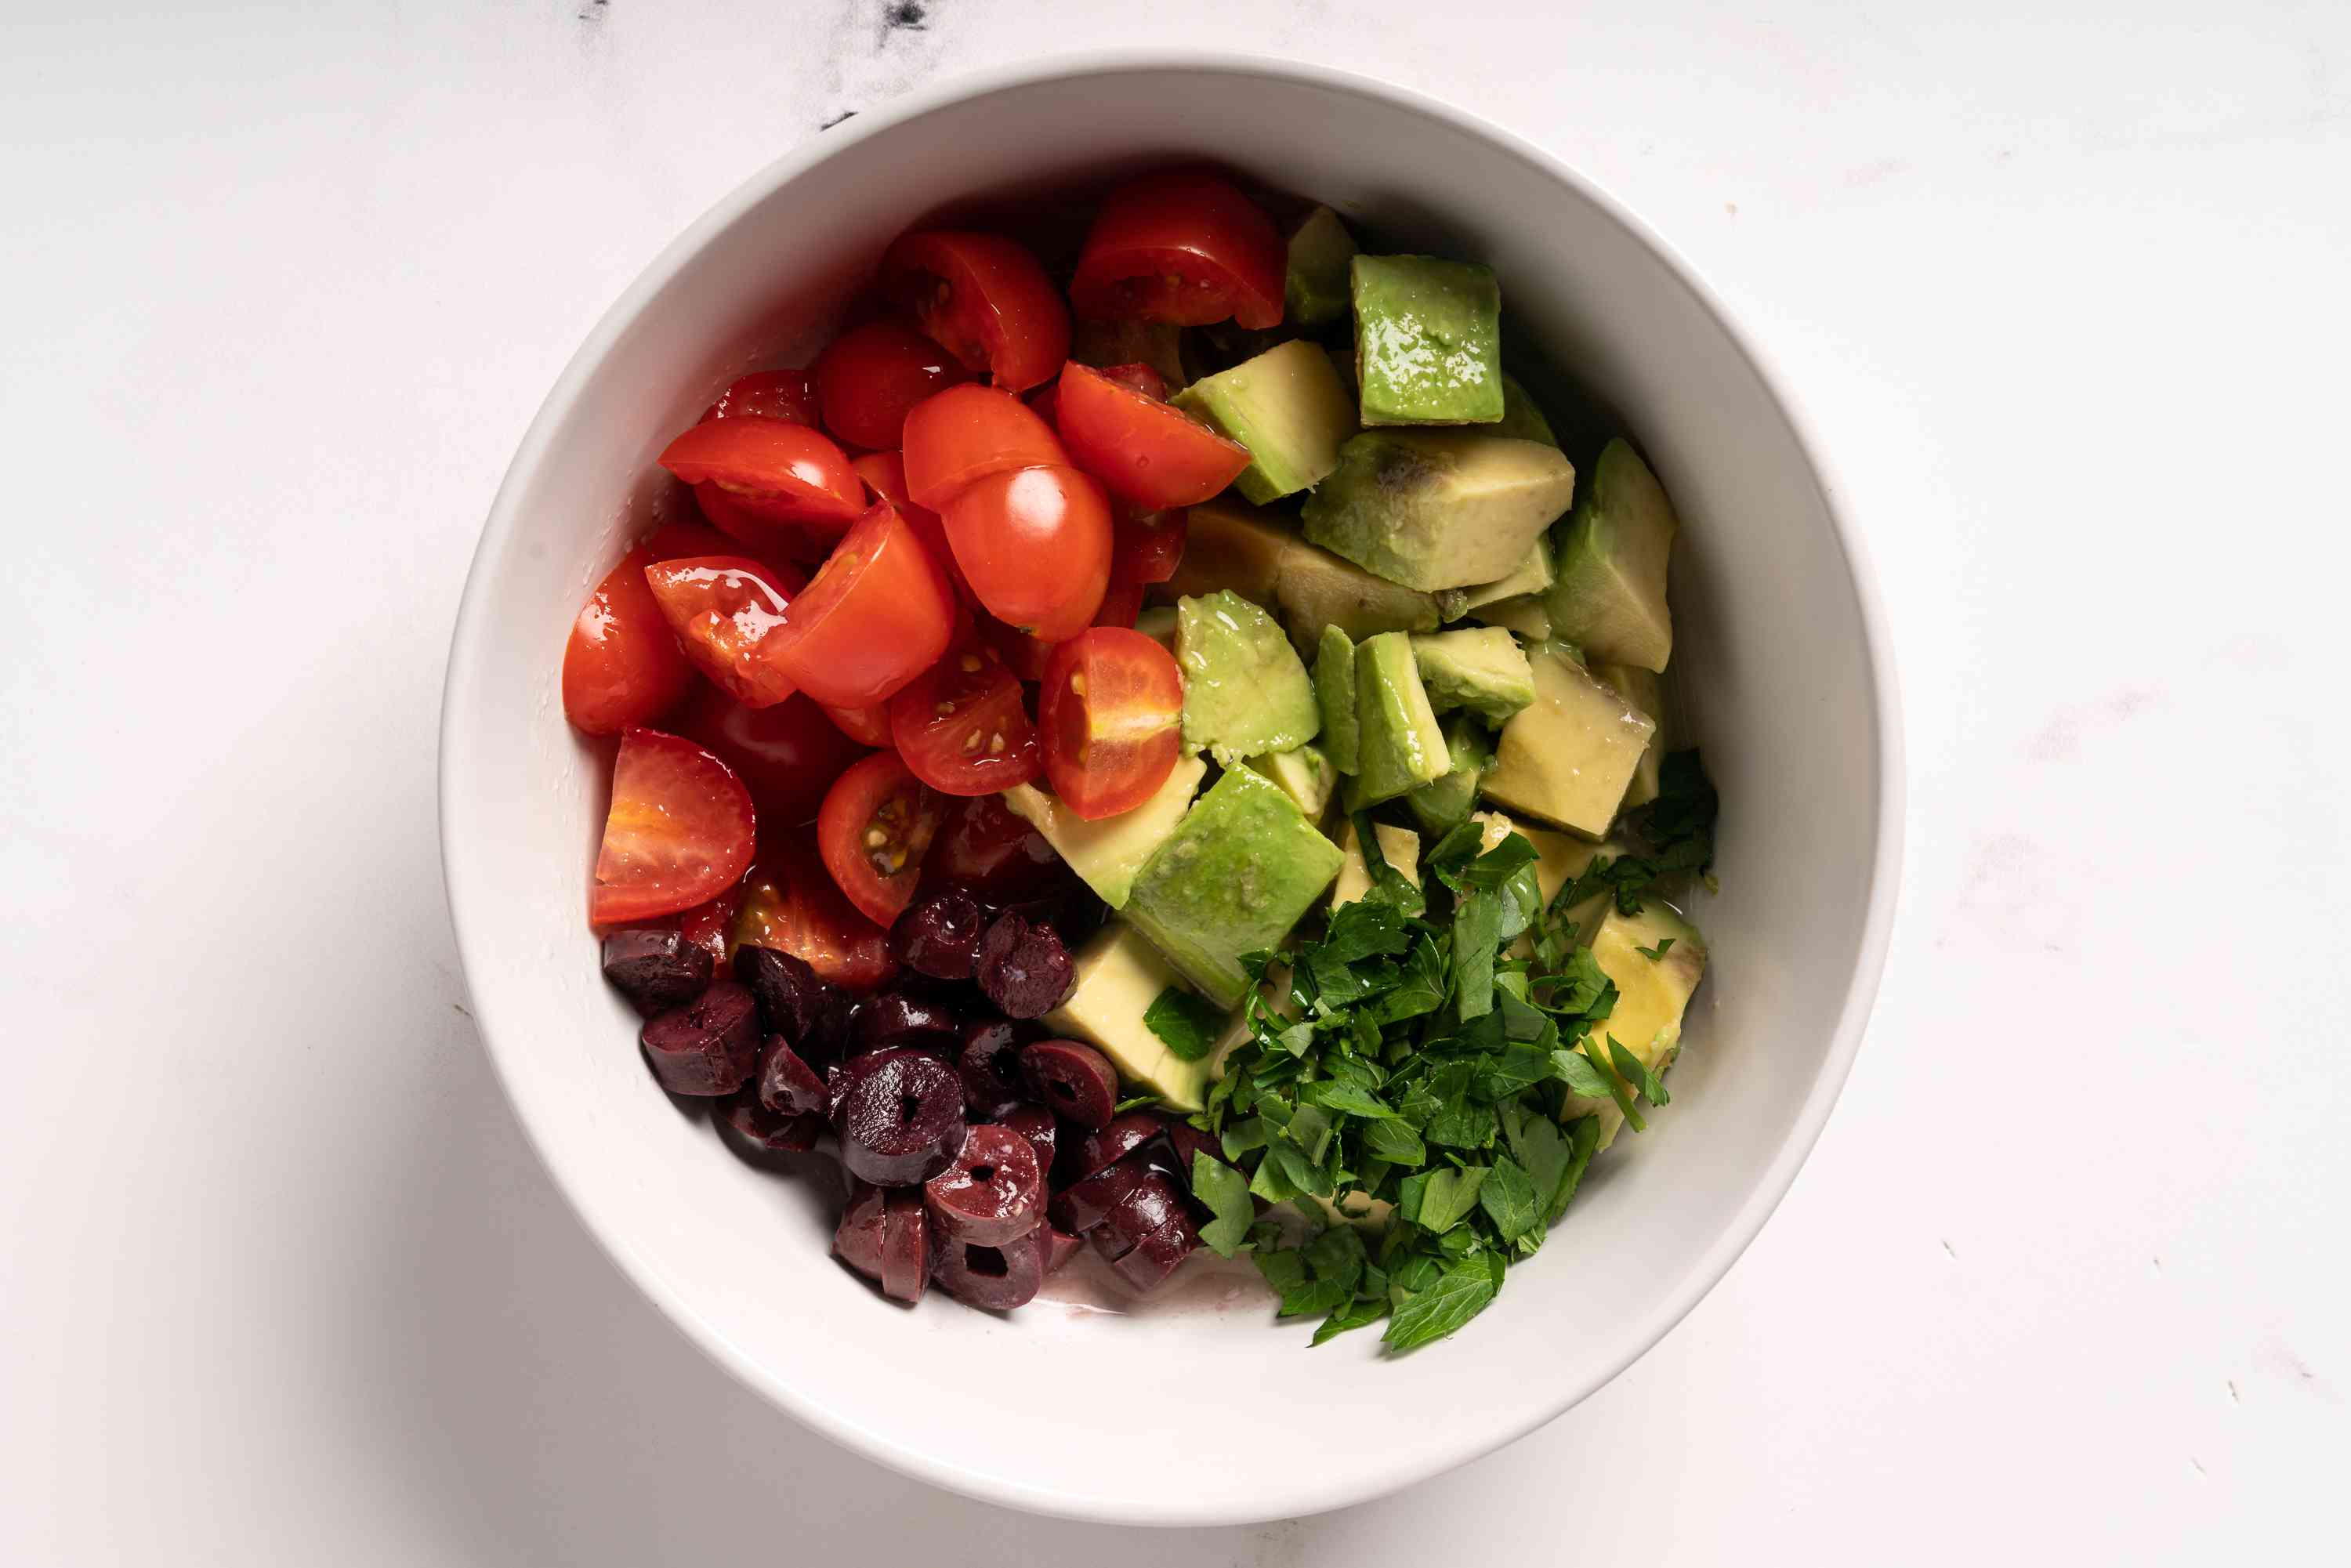 combine the avocado, cherry tomatoes, olives, lemon juice, and parsley in a small bowl